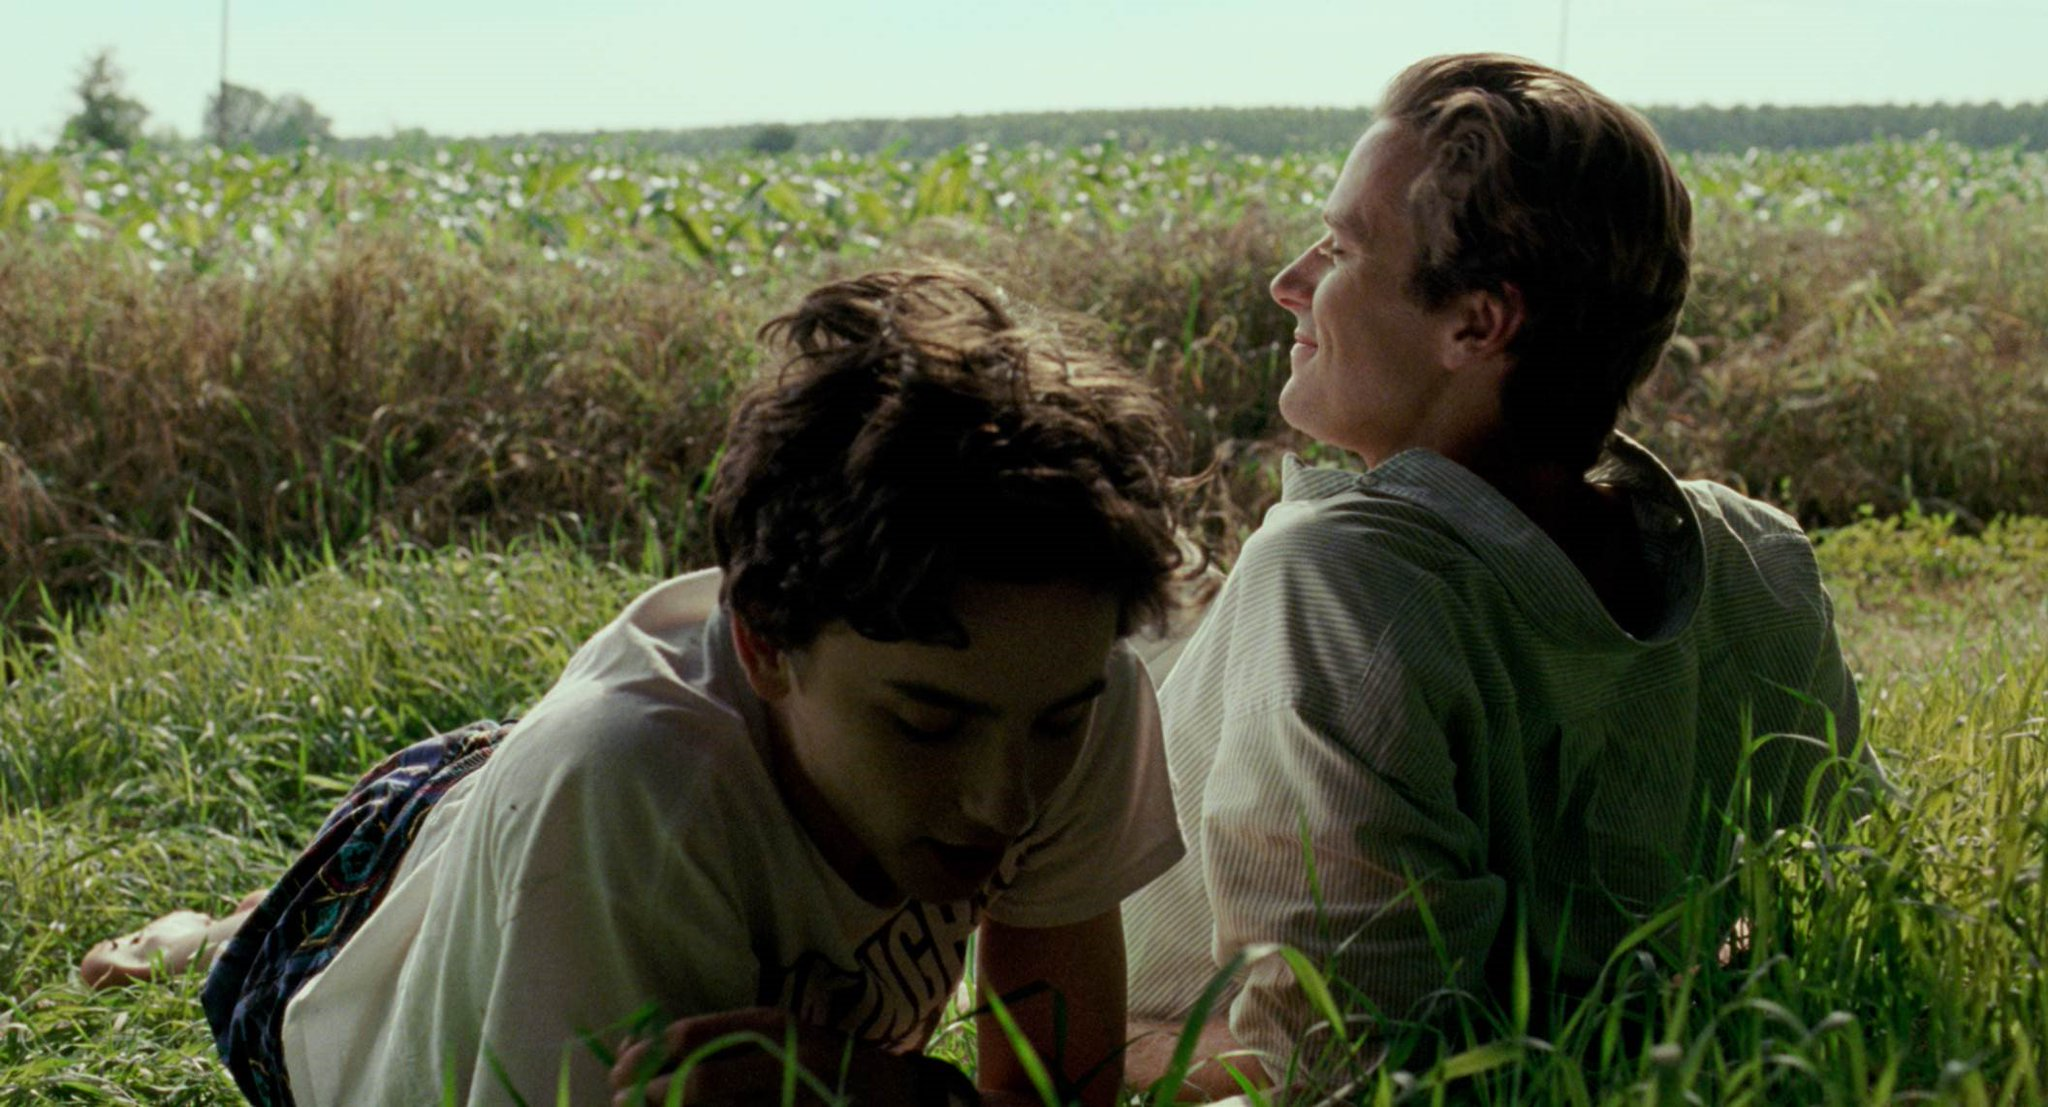 Call Me By Your Name | The Busybody